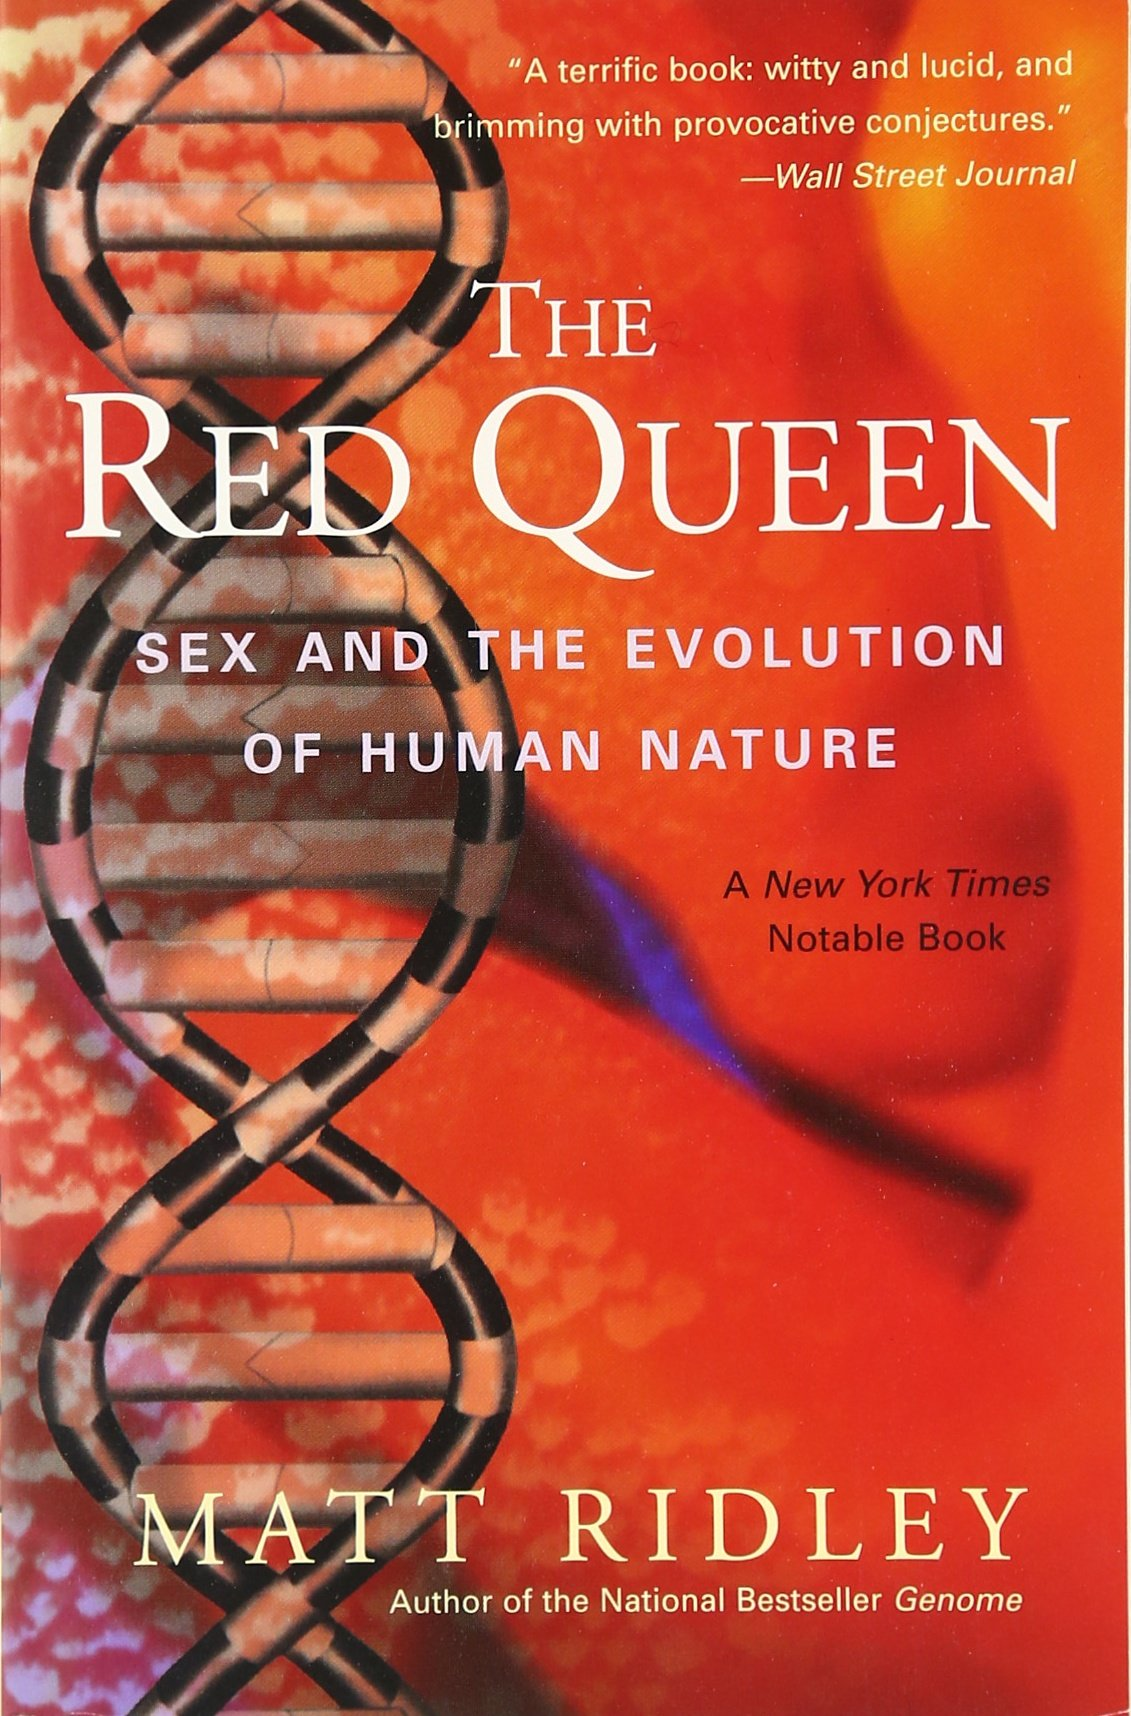 The Red Queen: Sex And The Evolution Of Human Nature: Matt Ridley:  9780060556570: Amazon: Books